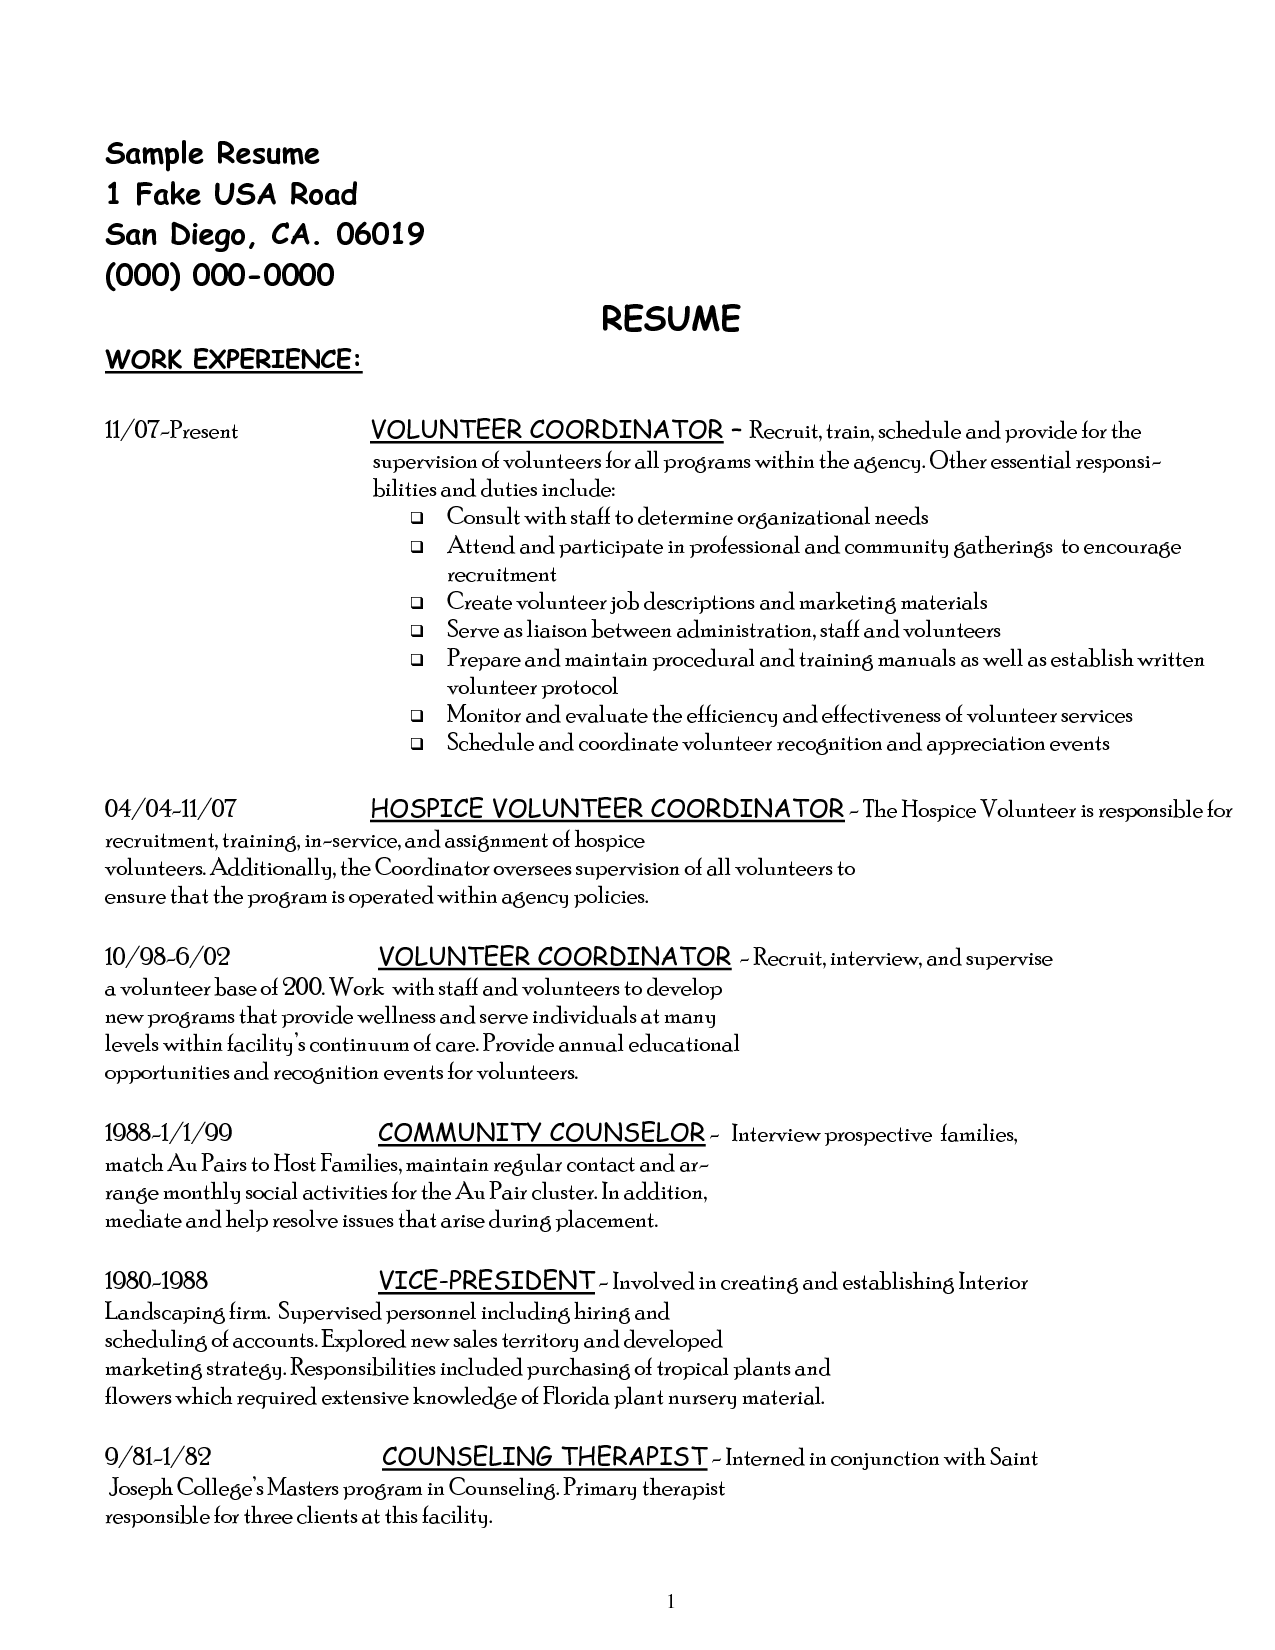 Resume Format Usa Volunteer Work On Resume Example Imagesvolunteer Resume Business